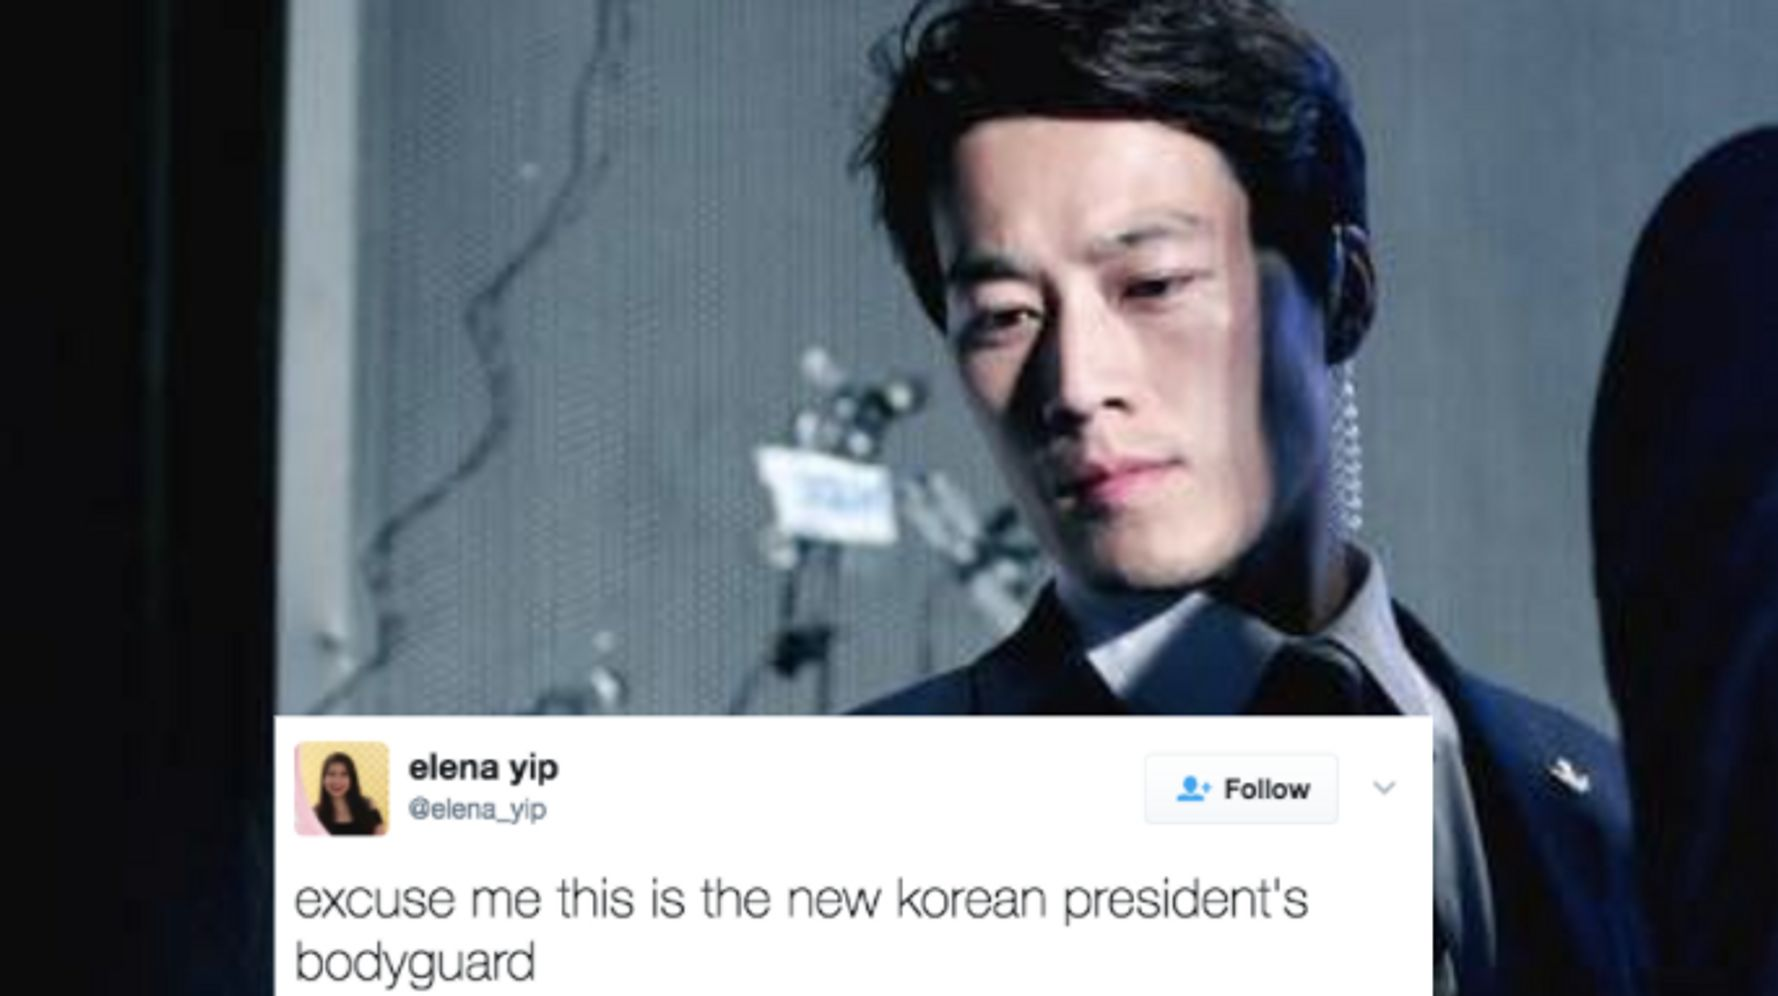 South Korea Has A New President, But His Hot Bodyguard Is Stealing